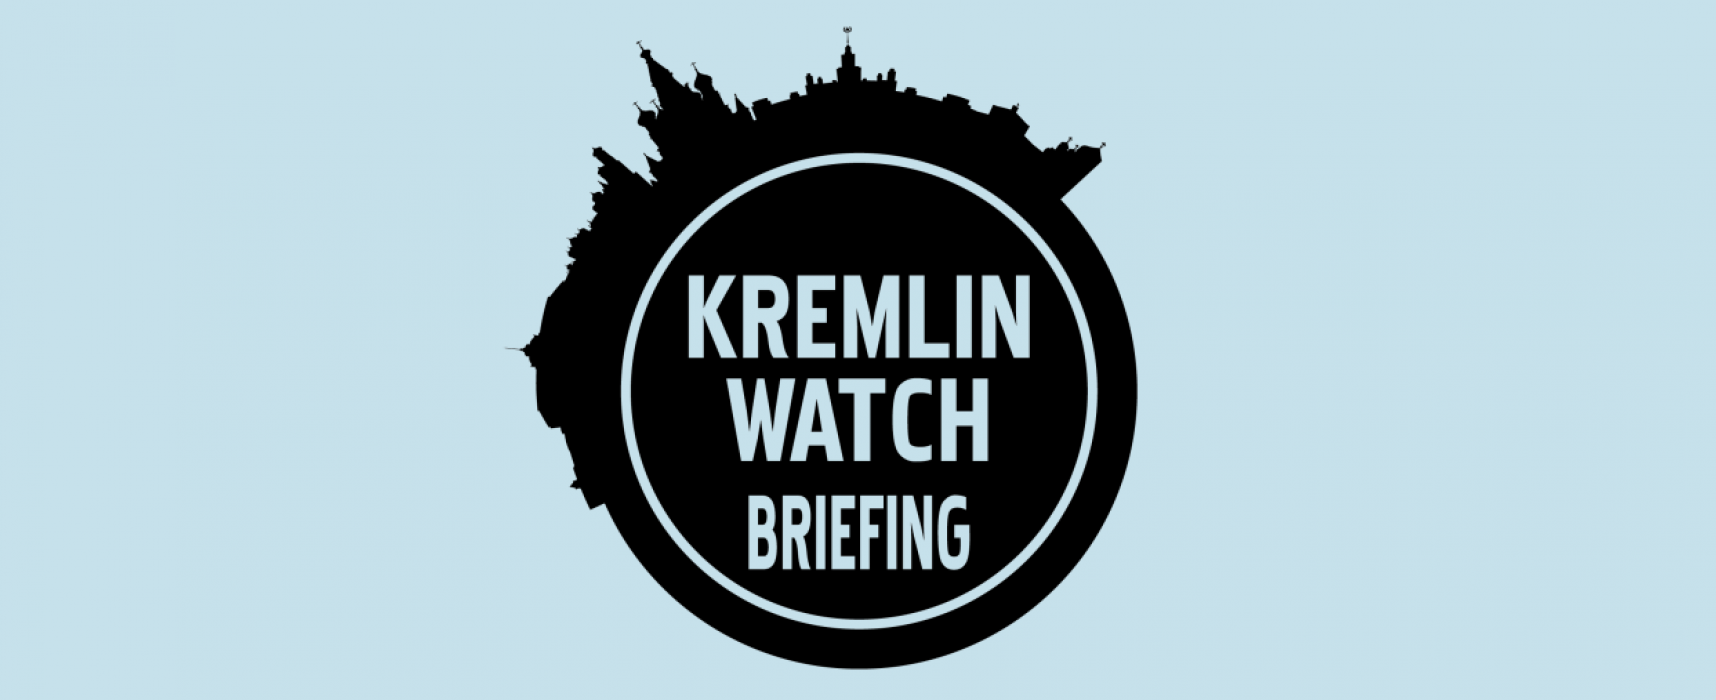 Kremlin Watch Briefing: Russian intelligence gaffes: Bellingcat identifies second Skripal suspect, Dutch government reveals counterintelligence operation against GRU agents